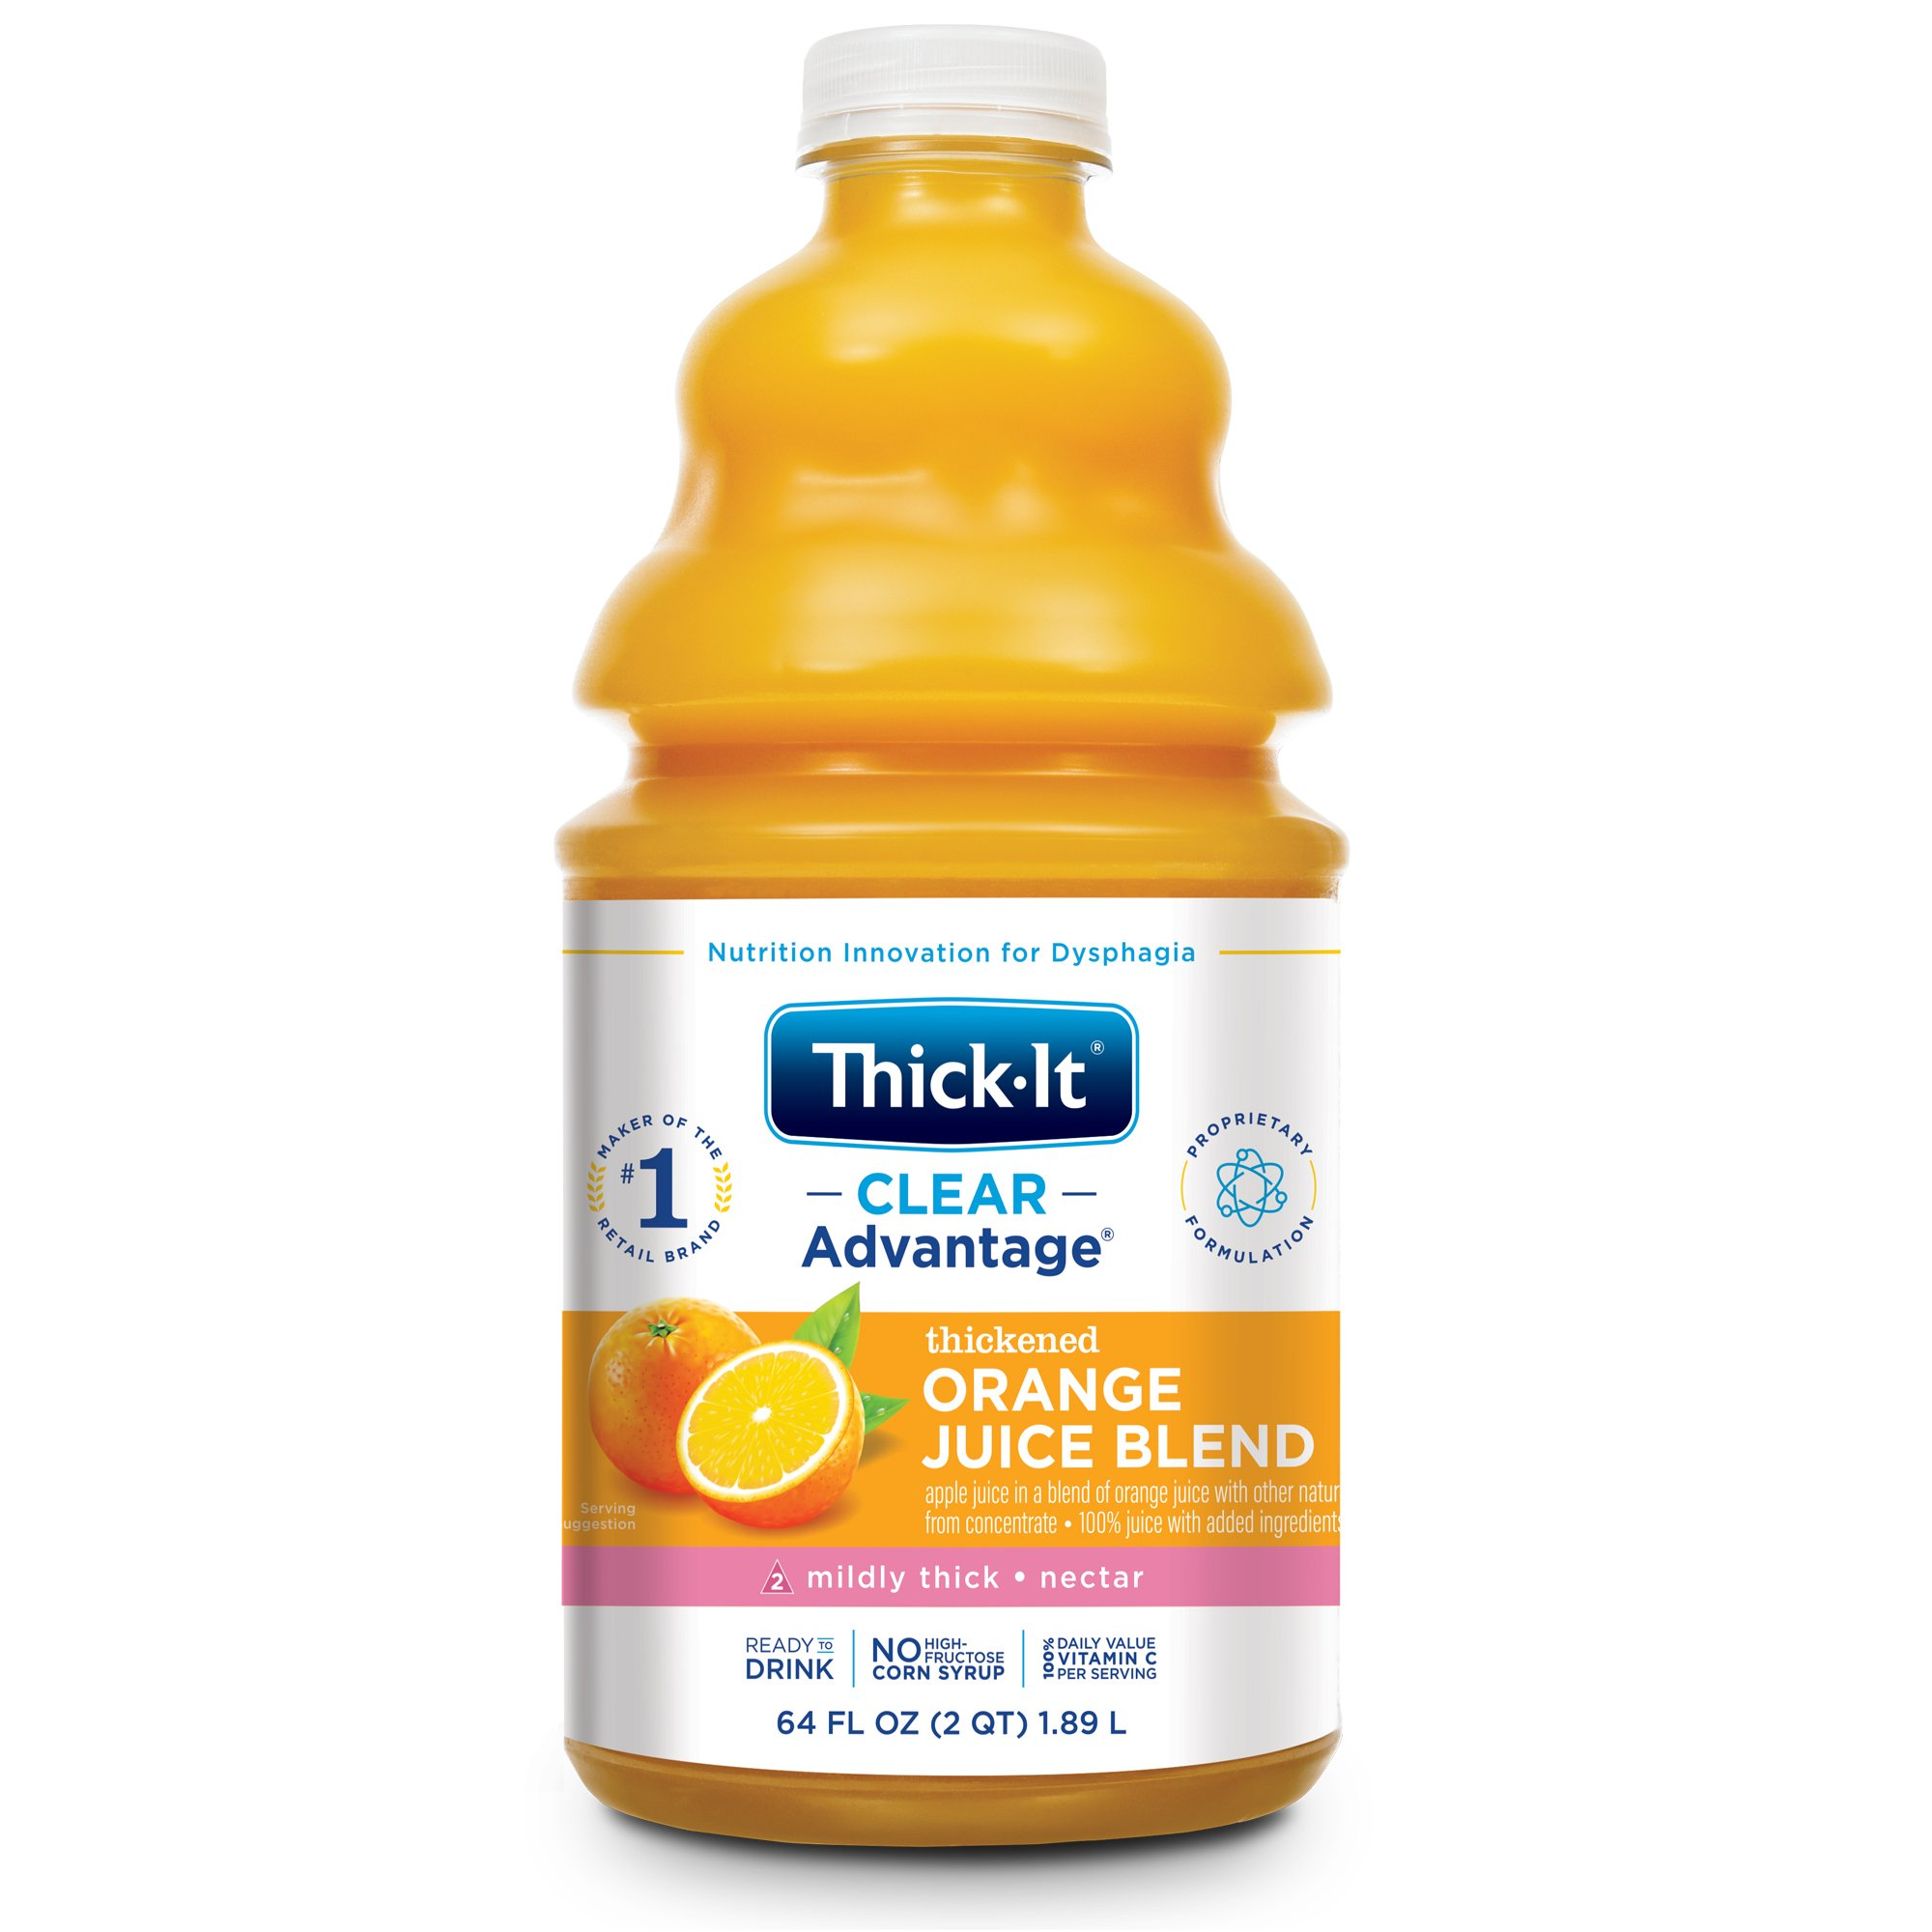 Thick-It Clear Advantage Thickened Orange Juice Blend, Mildly Thick, Nectar Consistency, B477-A5044, 64 oz. - 1 Each